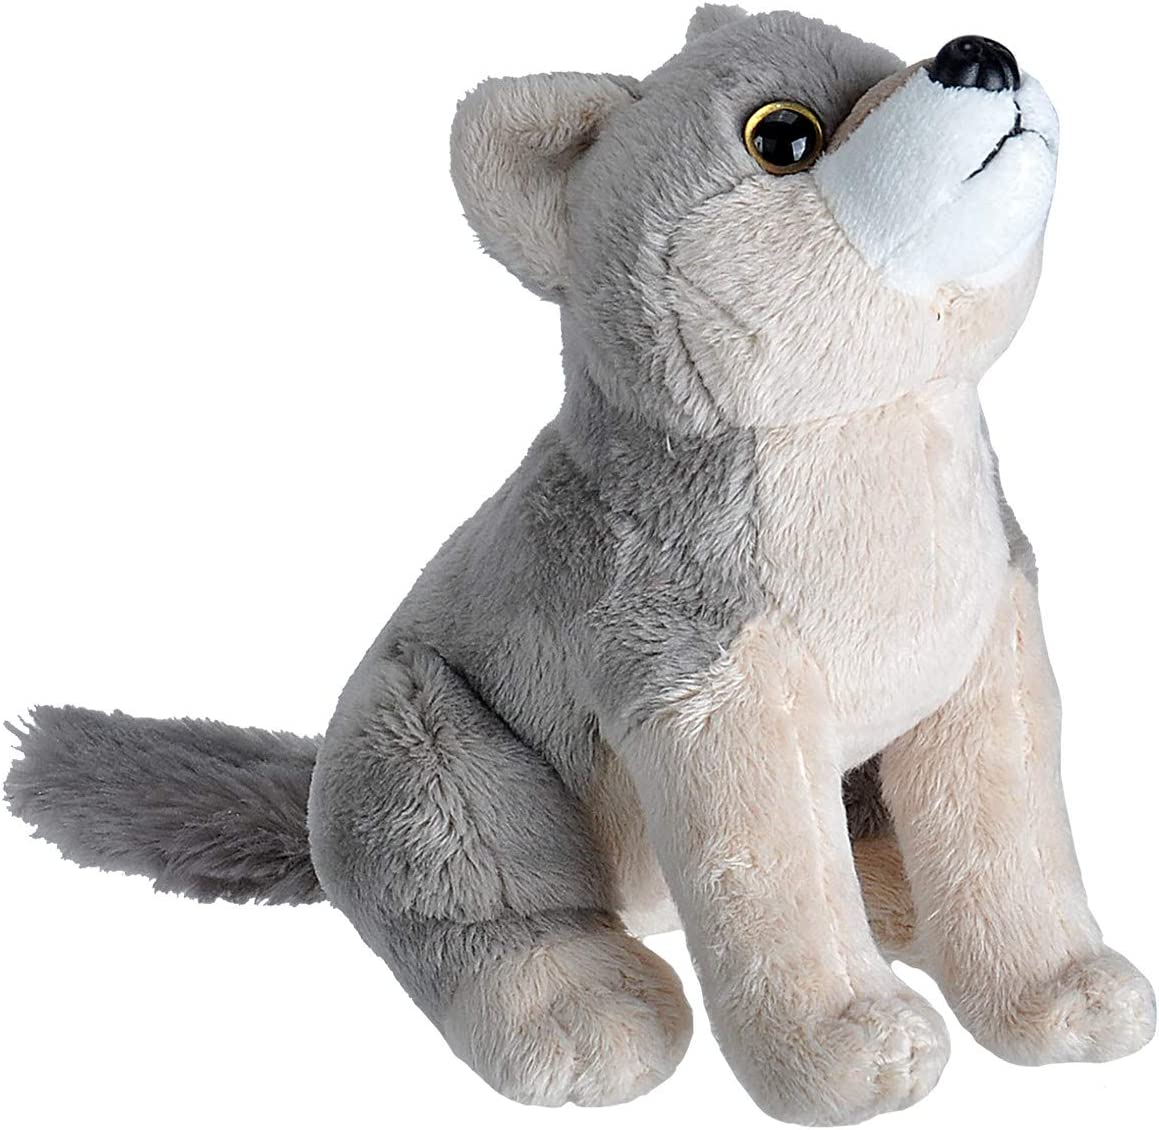 Wild Republic Wild Calls Wolf, Authentic Animal Sound, Stuffed Animal, Eight Inches, Gift for Kids, Plush Toy, Fill is Spun Recycled Water Bottles